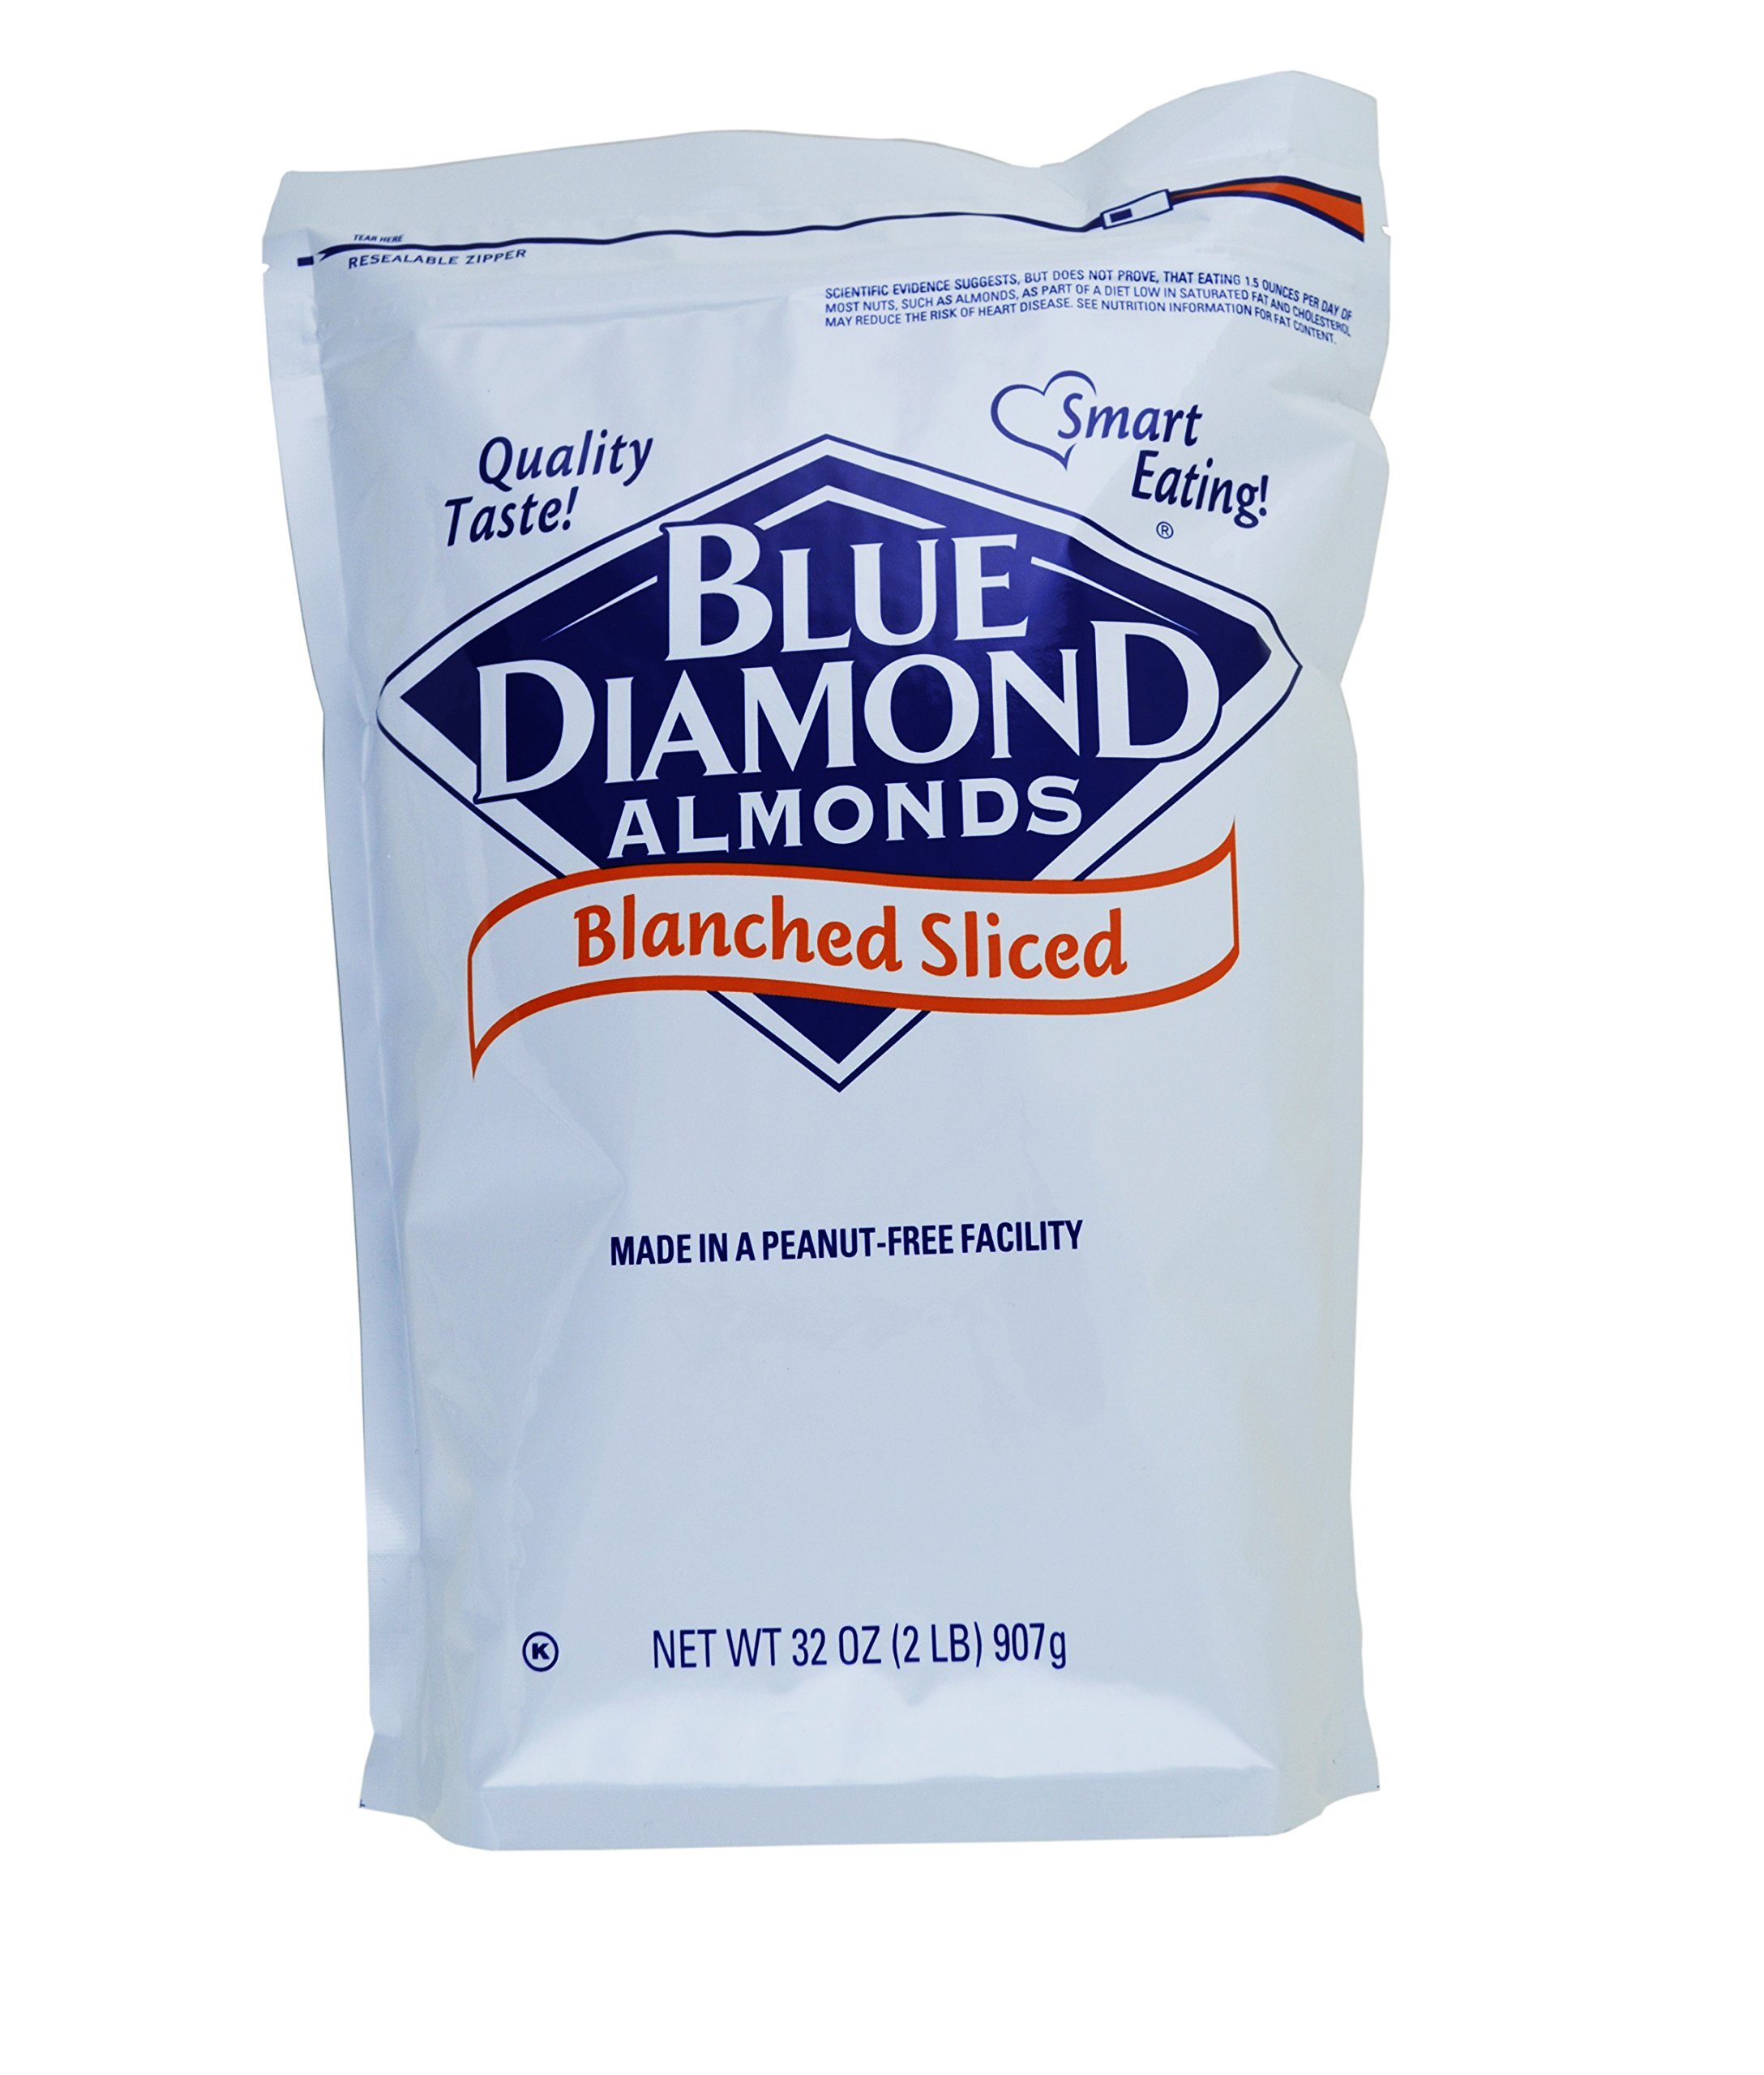 Blue Diamond, Blanched Sliced Almonds 2 lb. (4 Count)